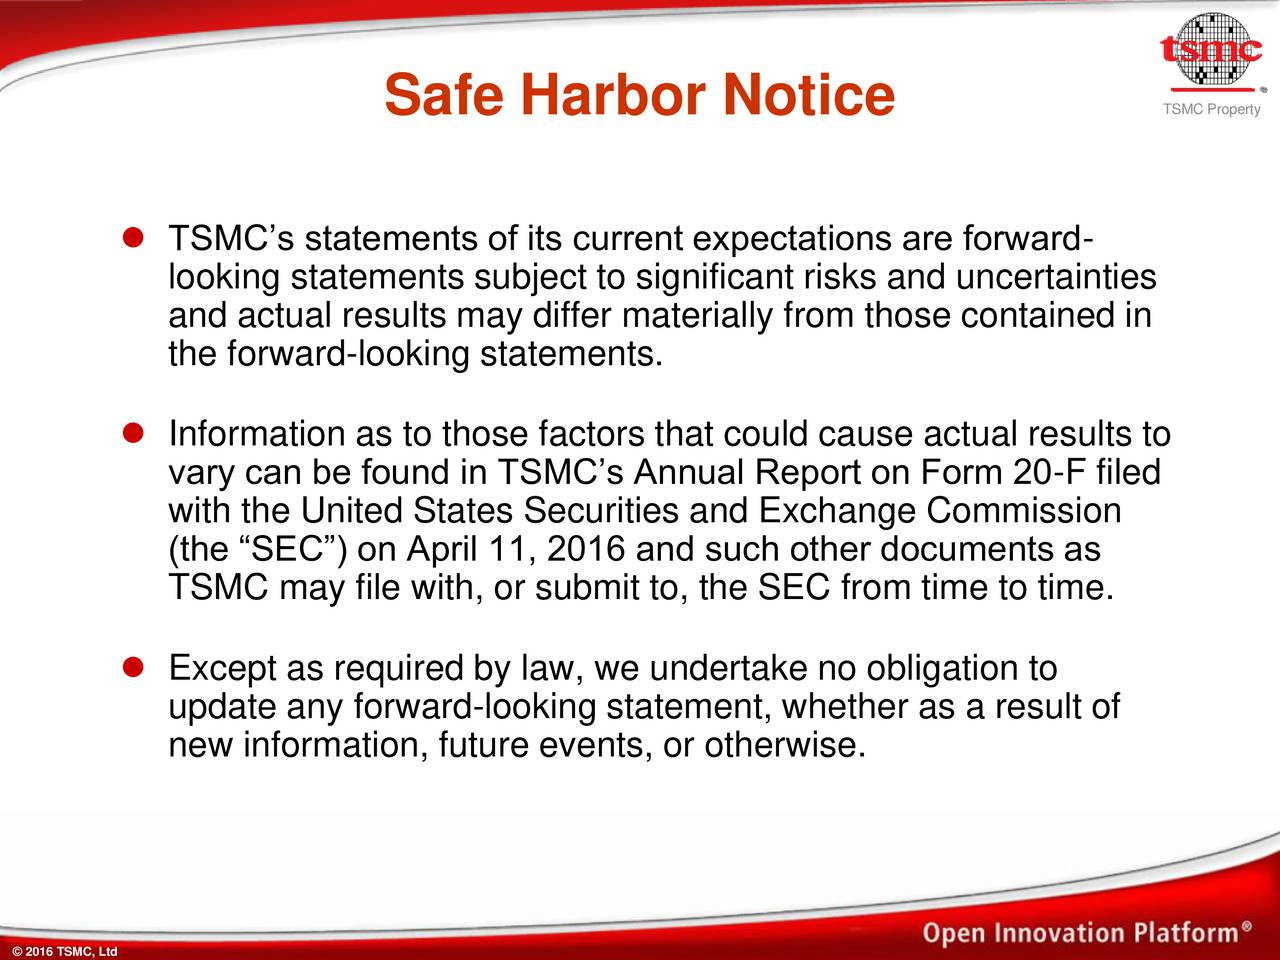 TSMCs statements of its current expectations are forward- looking statements subject to significant risks and uncertainties and actual results may differ materially from those contained in the forward-looking statements. Information as to those factors that could cause actual results to vary can be found in TSMCs Annual Report on Form 20-F filed with the United States Securities and Exchange Commission (the SEC) on April 11, 2016 and such other documents as TSMC may file with, or submit to, the SEC from time to time. Except as required by law, we undertake no obligation to update any forward-looking statement, whether as a result of new information, future events, or otherwise.